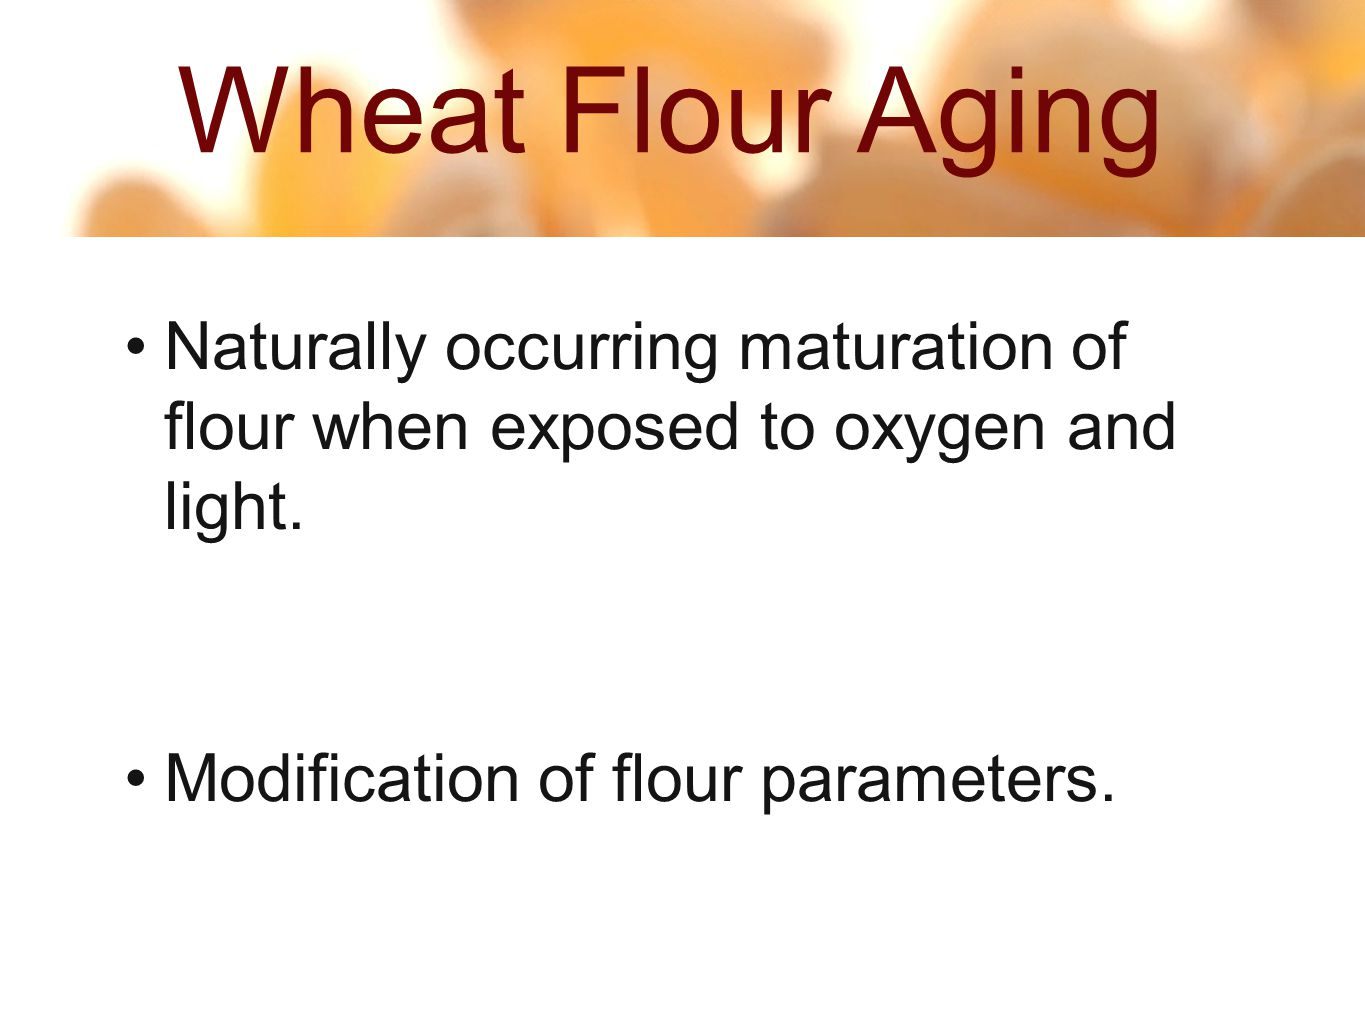 Wheat Flour Aging 3 19 Naturally occurring maturation of flour when exposed to oxygen and light.